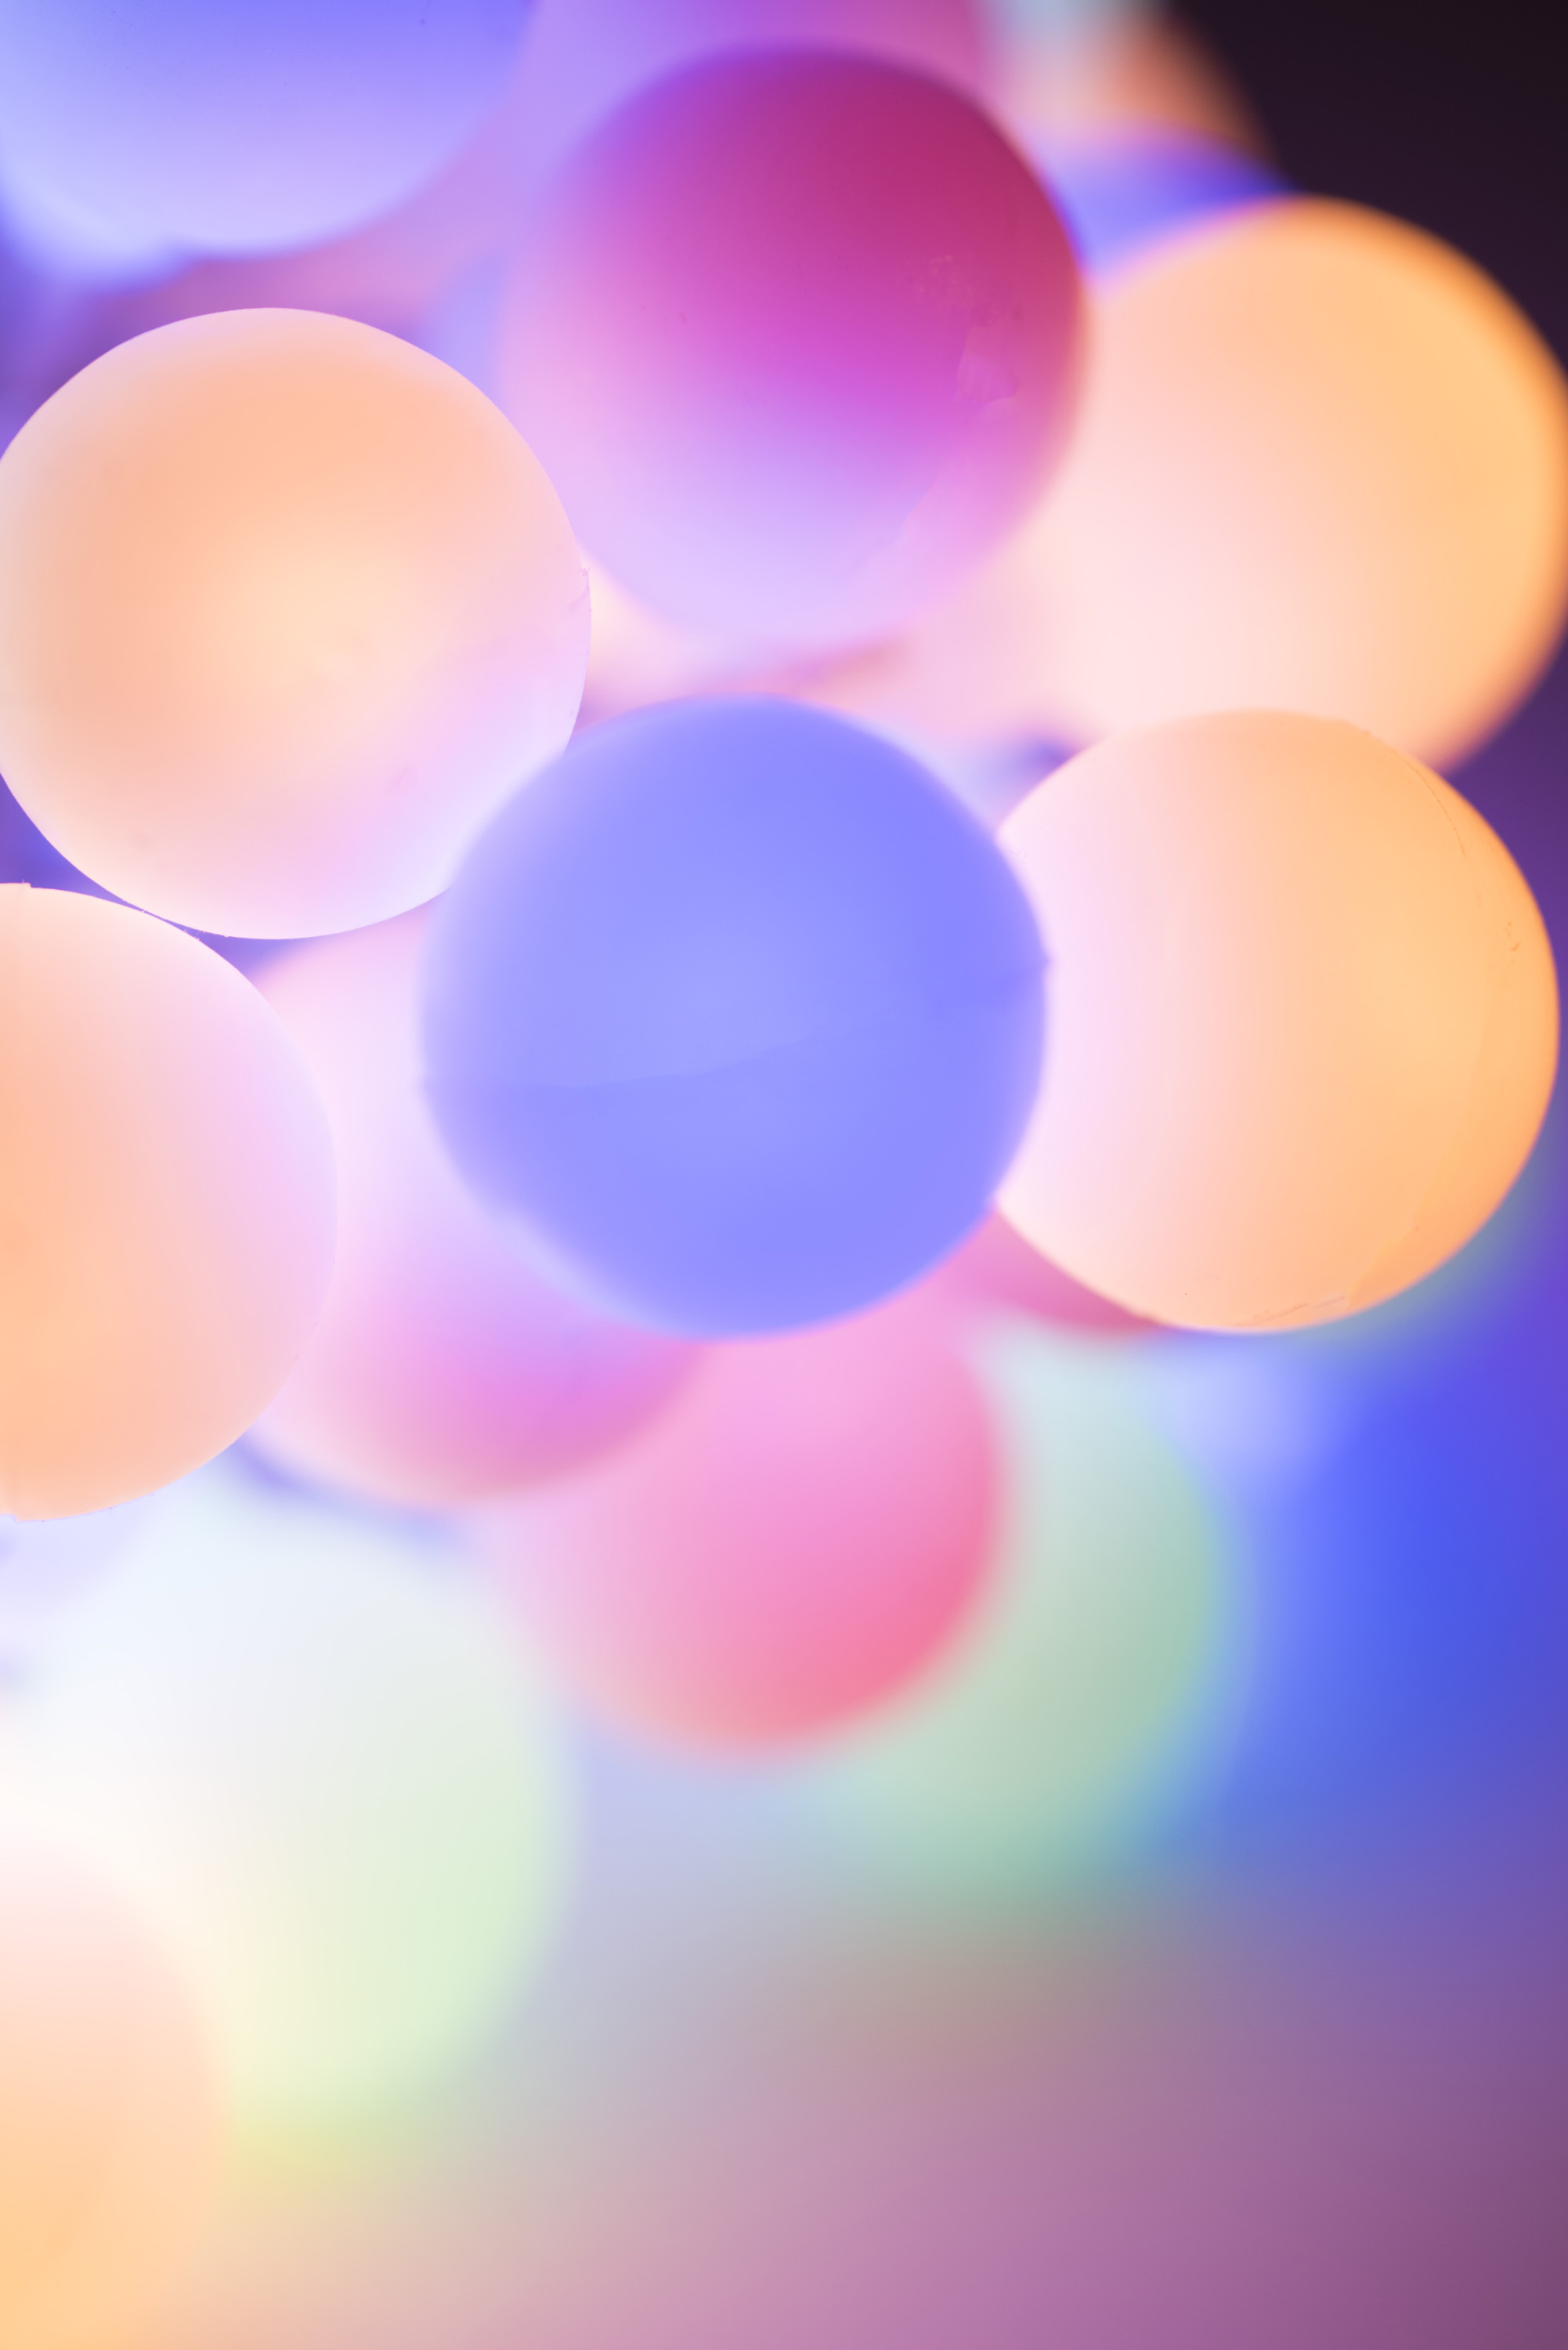 Photo of Christmas background of round pastel lights | Free ...